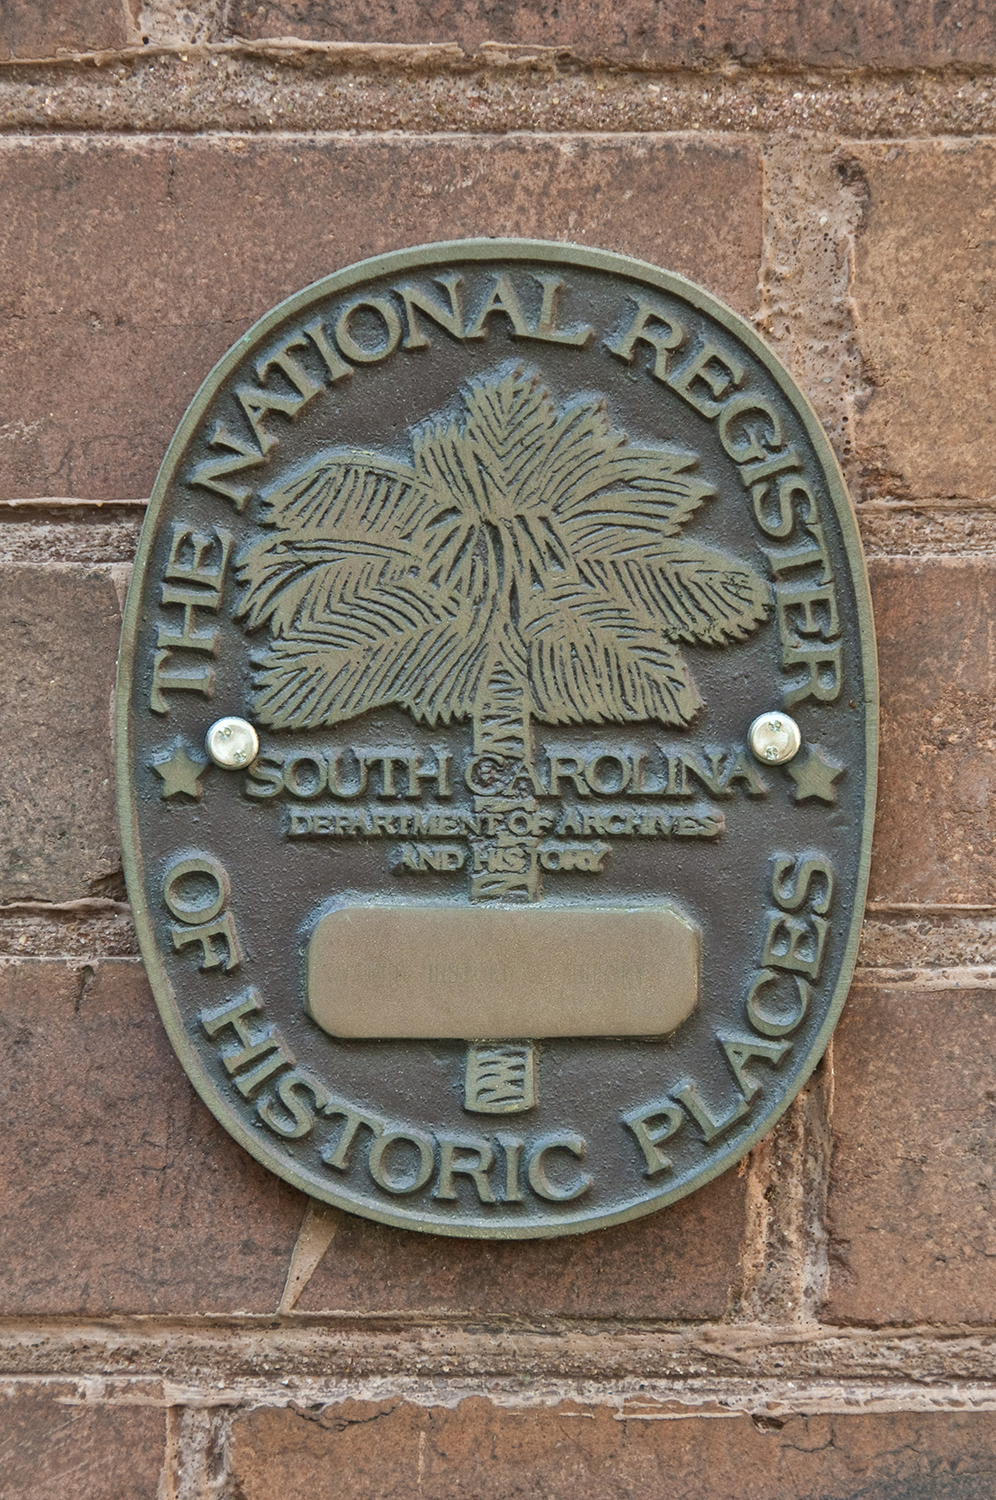 Photograph of the Waring's National Register plaque, the Waring Historical Library is on the National Registry of Historic Places